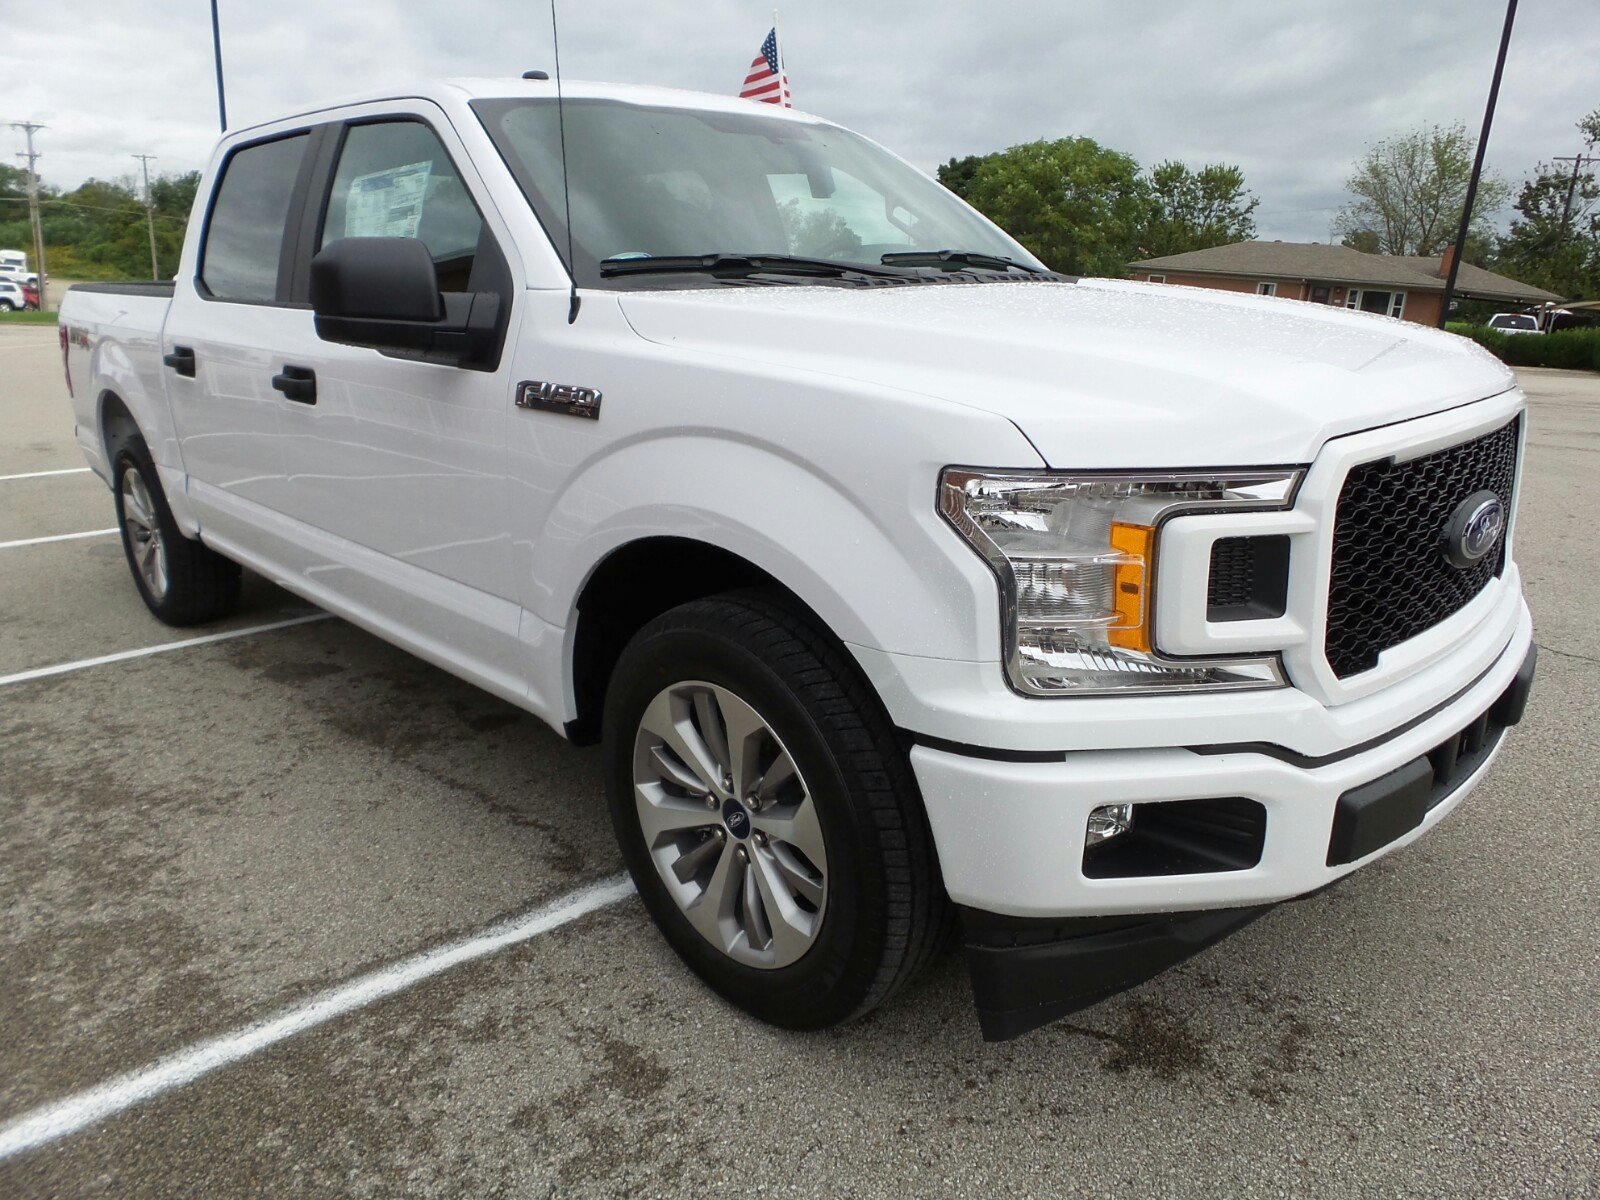 2018 Ford F-150 4X2 STYLESIDE S/CREW